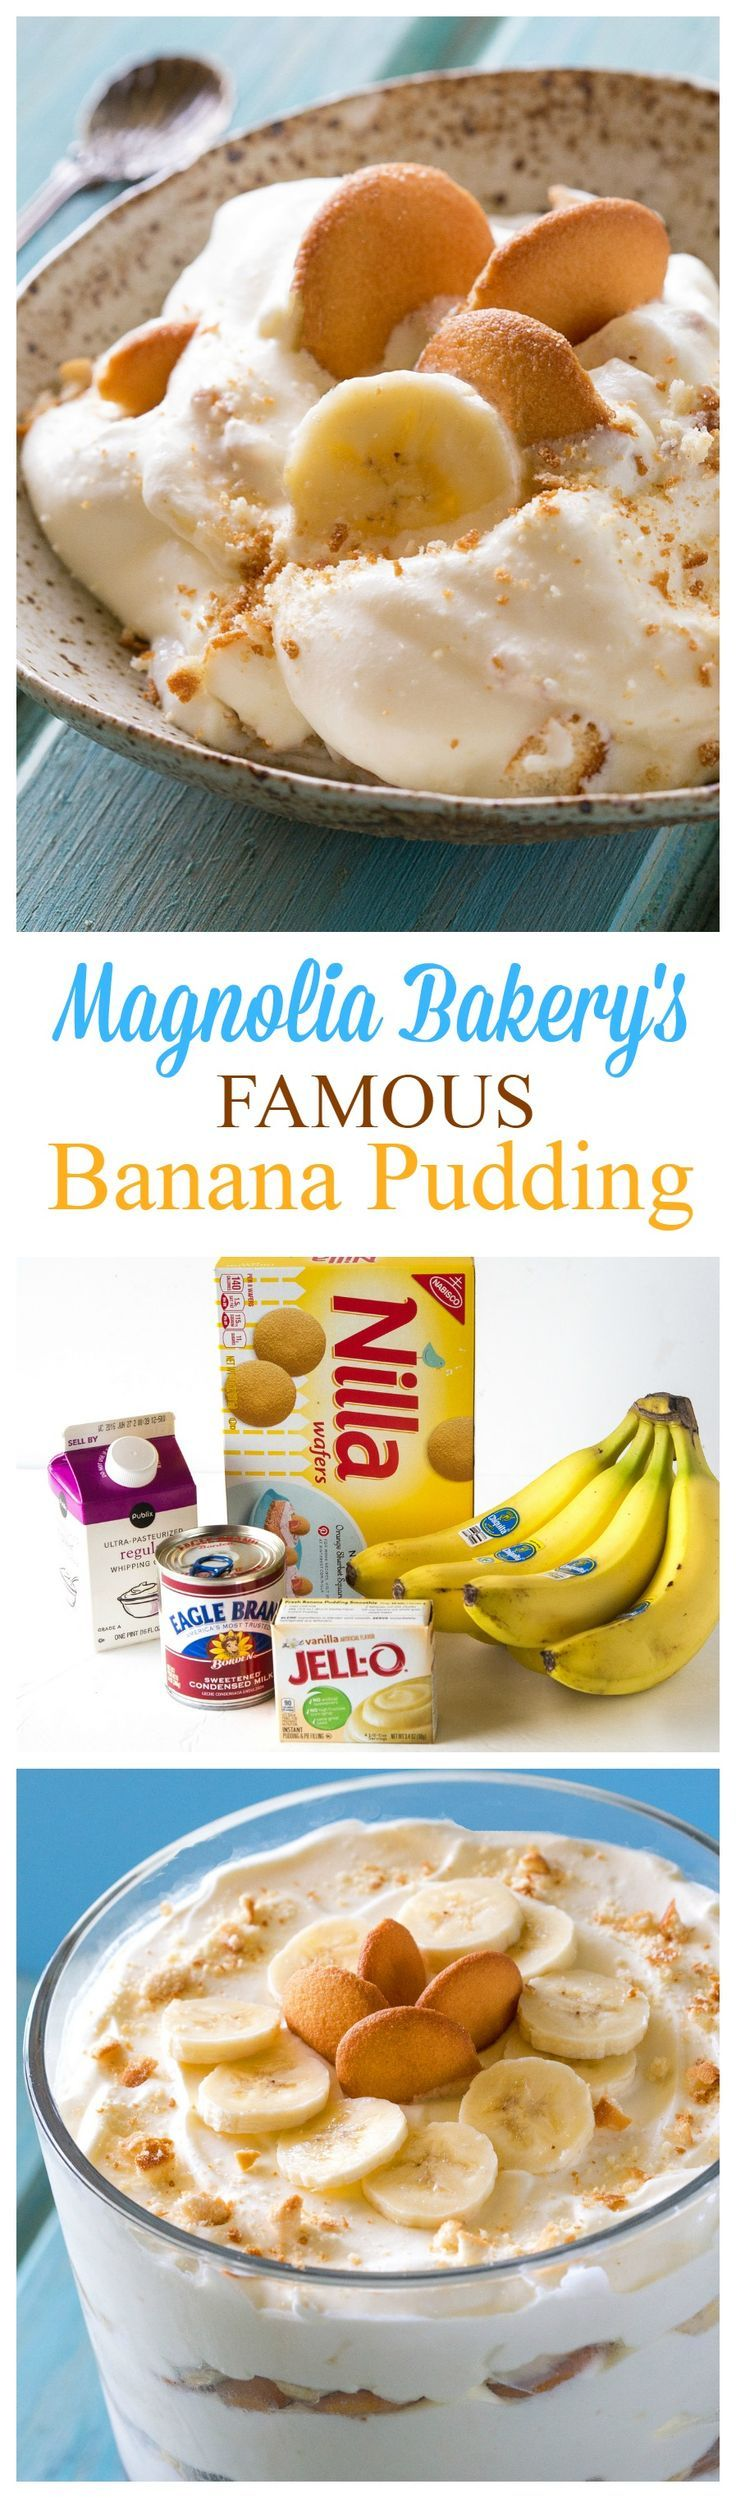 Magnolia Bakery's Famous Banana Pudding - THE recipe from their cookbook. It's heaven. the-girl-who-ate-...